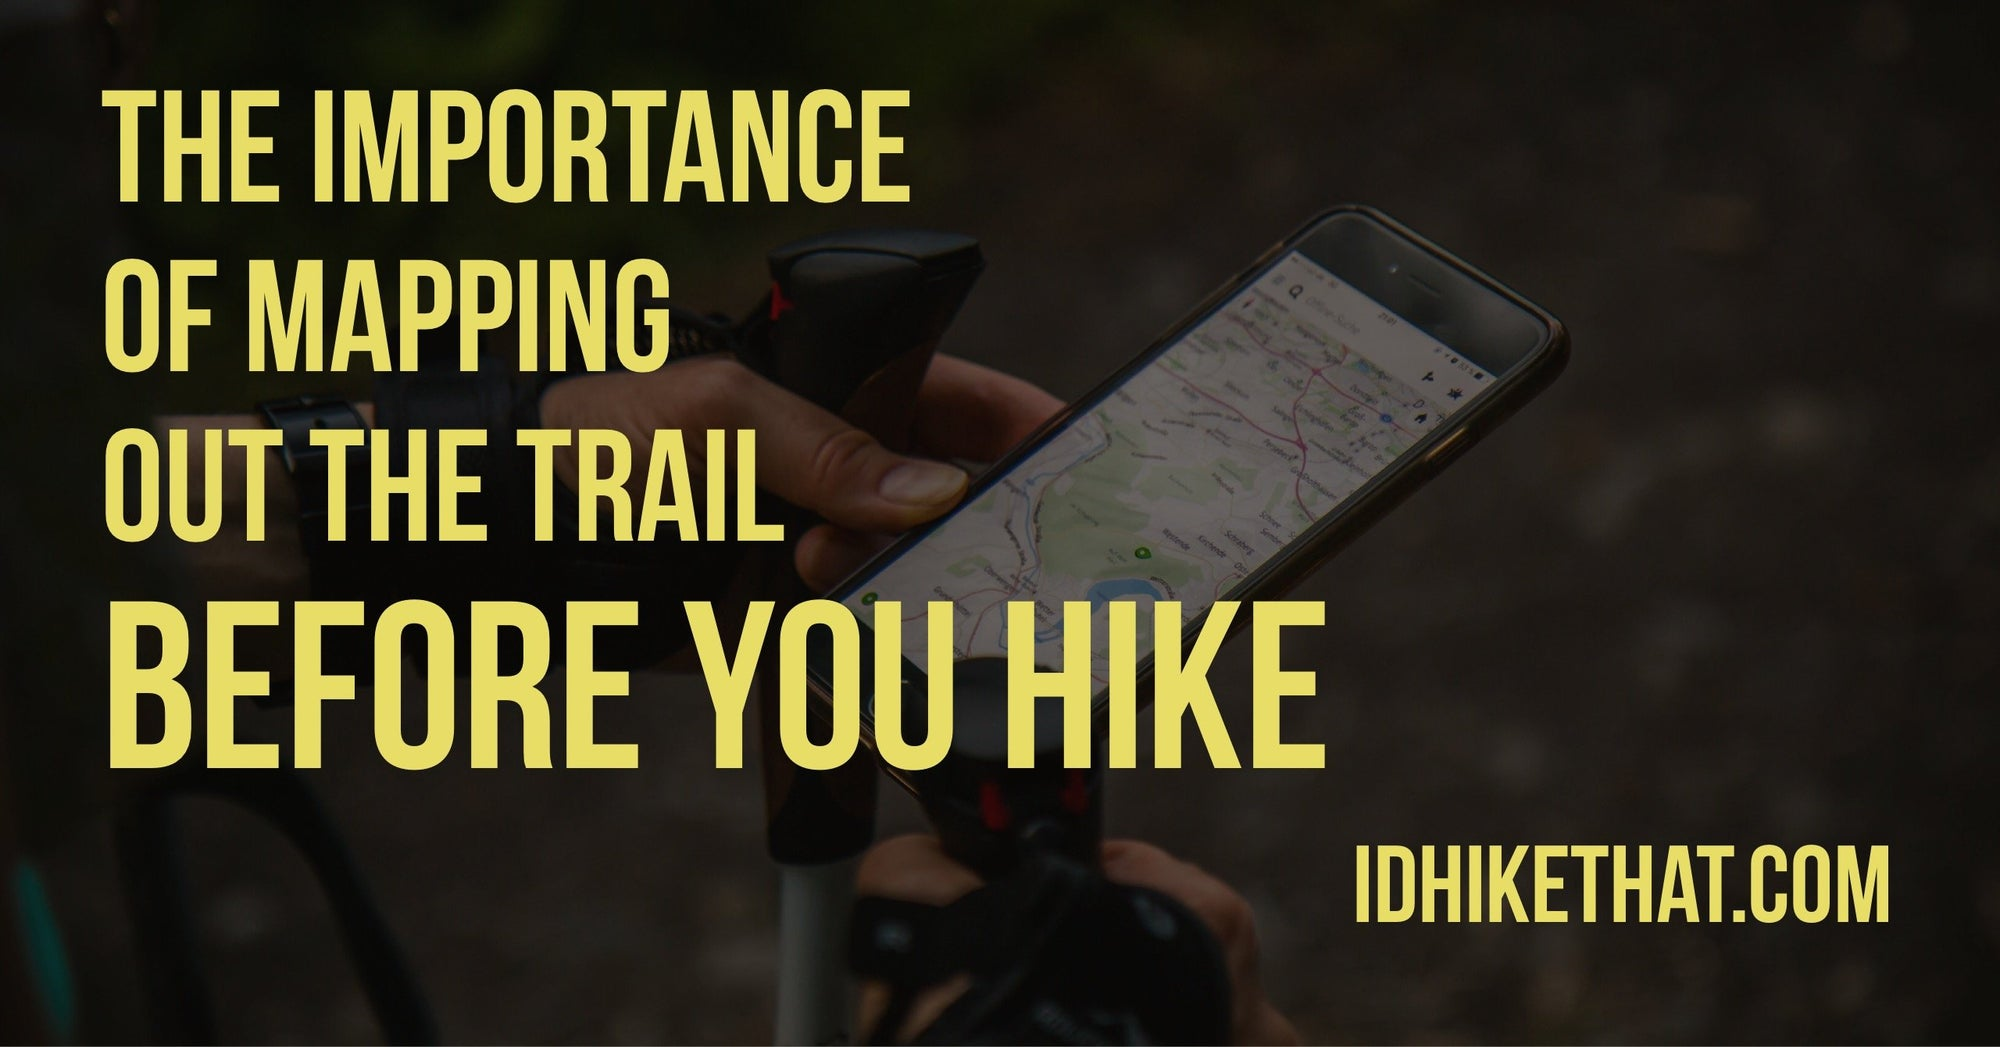 The importance of mapping out the trail before you hike. Visit idhikethat.com to learn why doing your research really pays off.